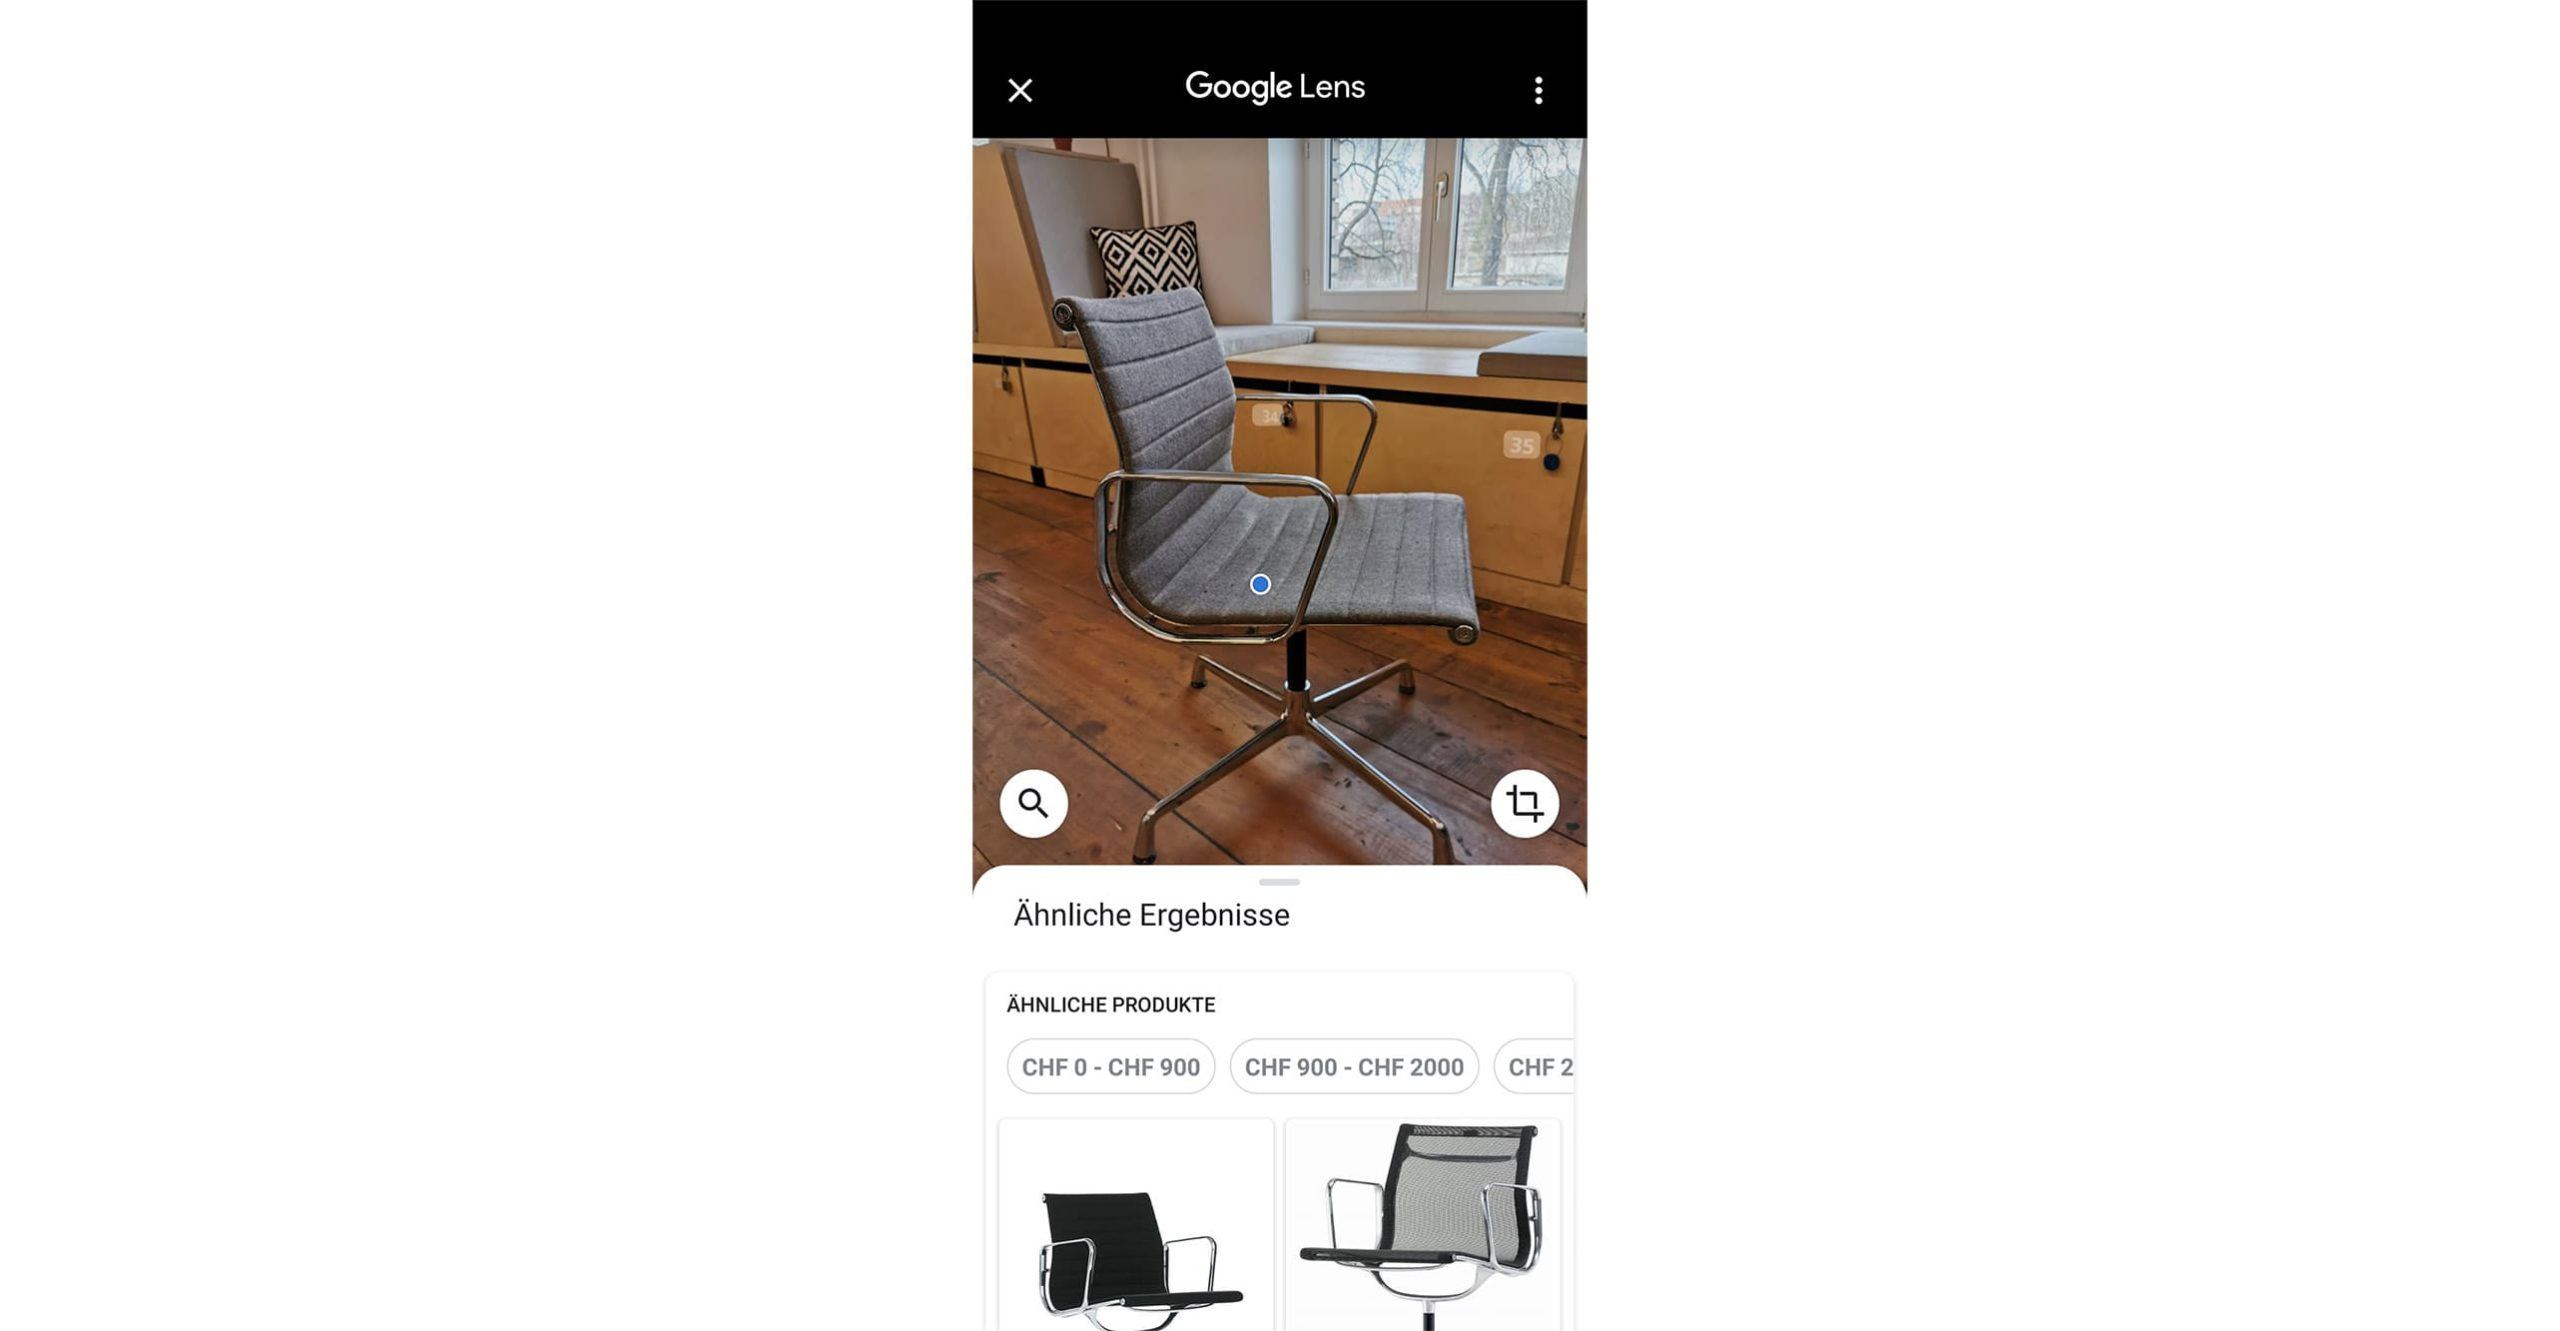 Online Marketing Trends 2020 Google Lens